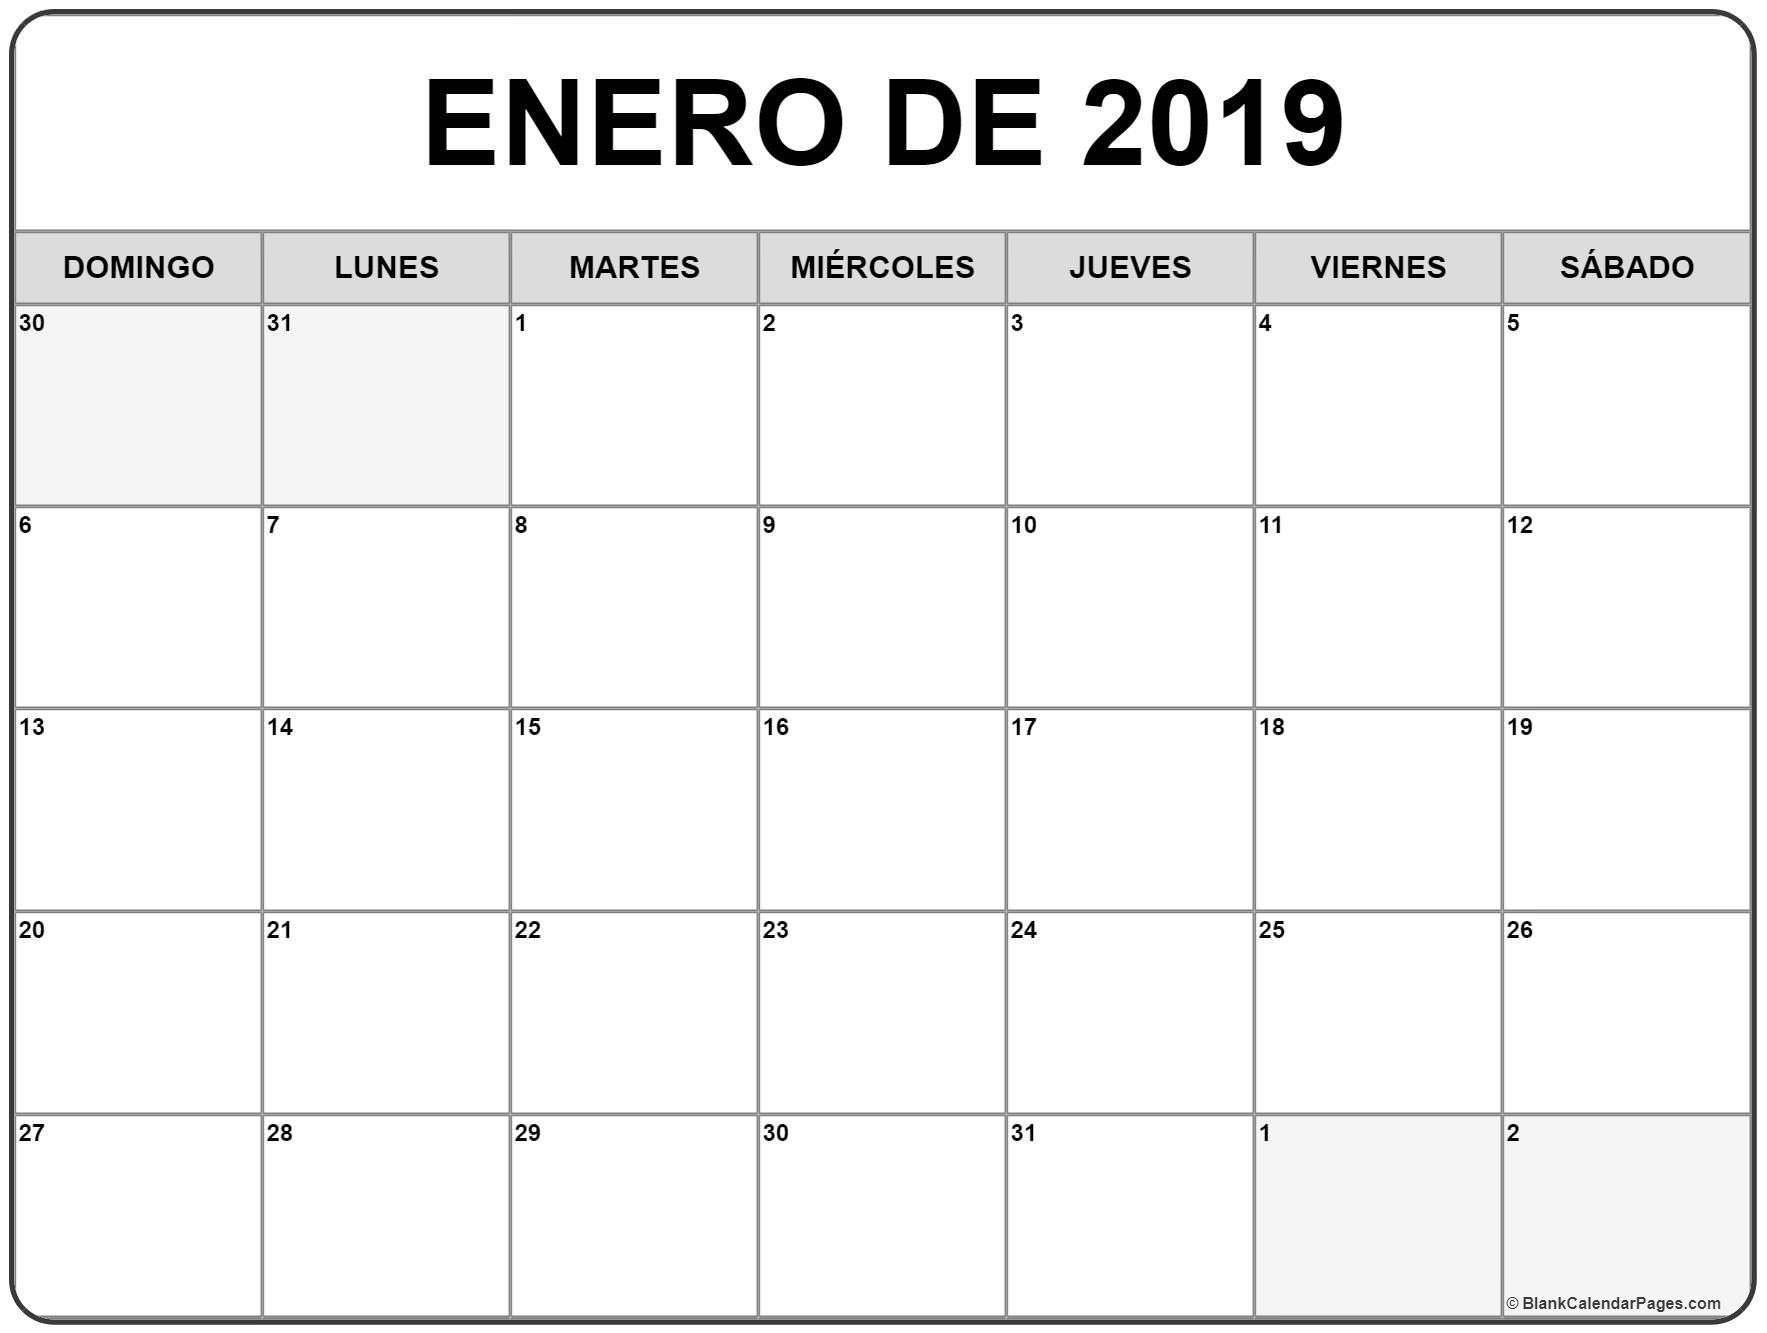 Calendario Enero 2019 | Download 2019 Calendar Printable With Calendar 2019 Enero